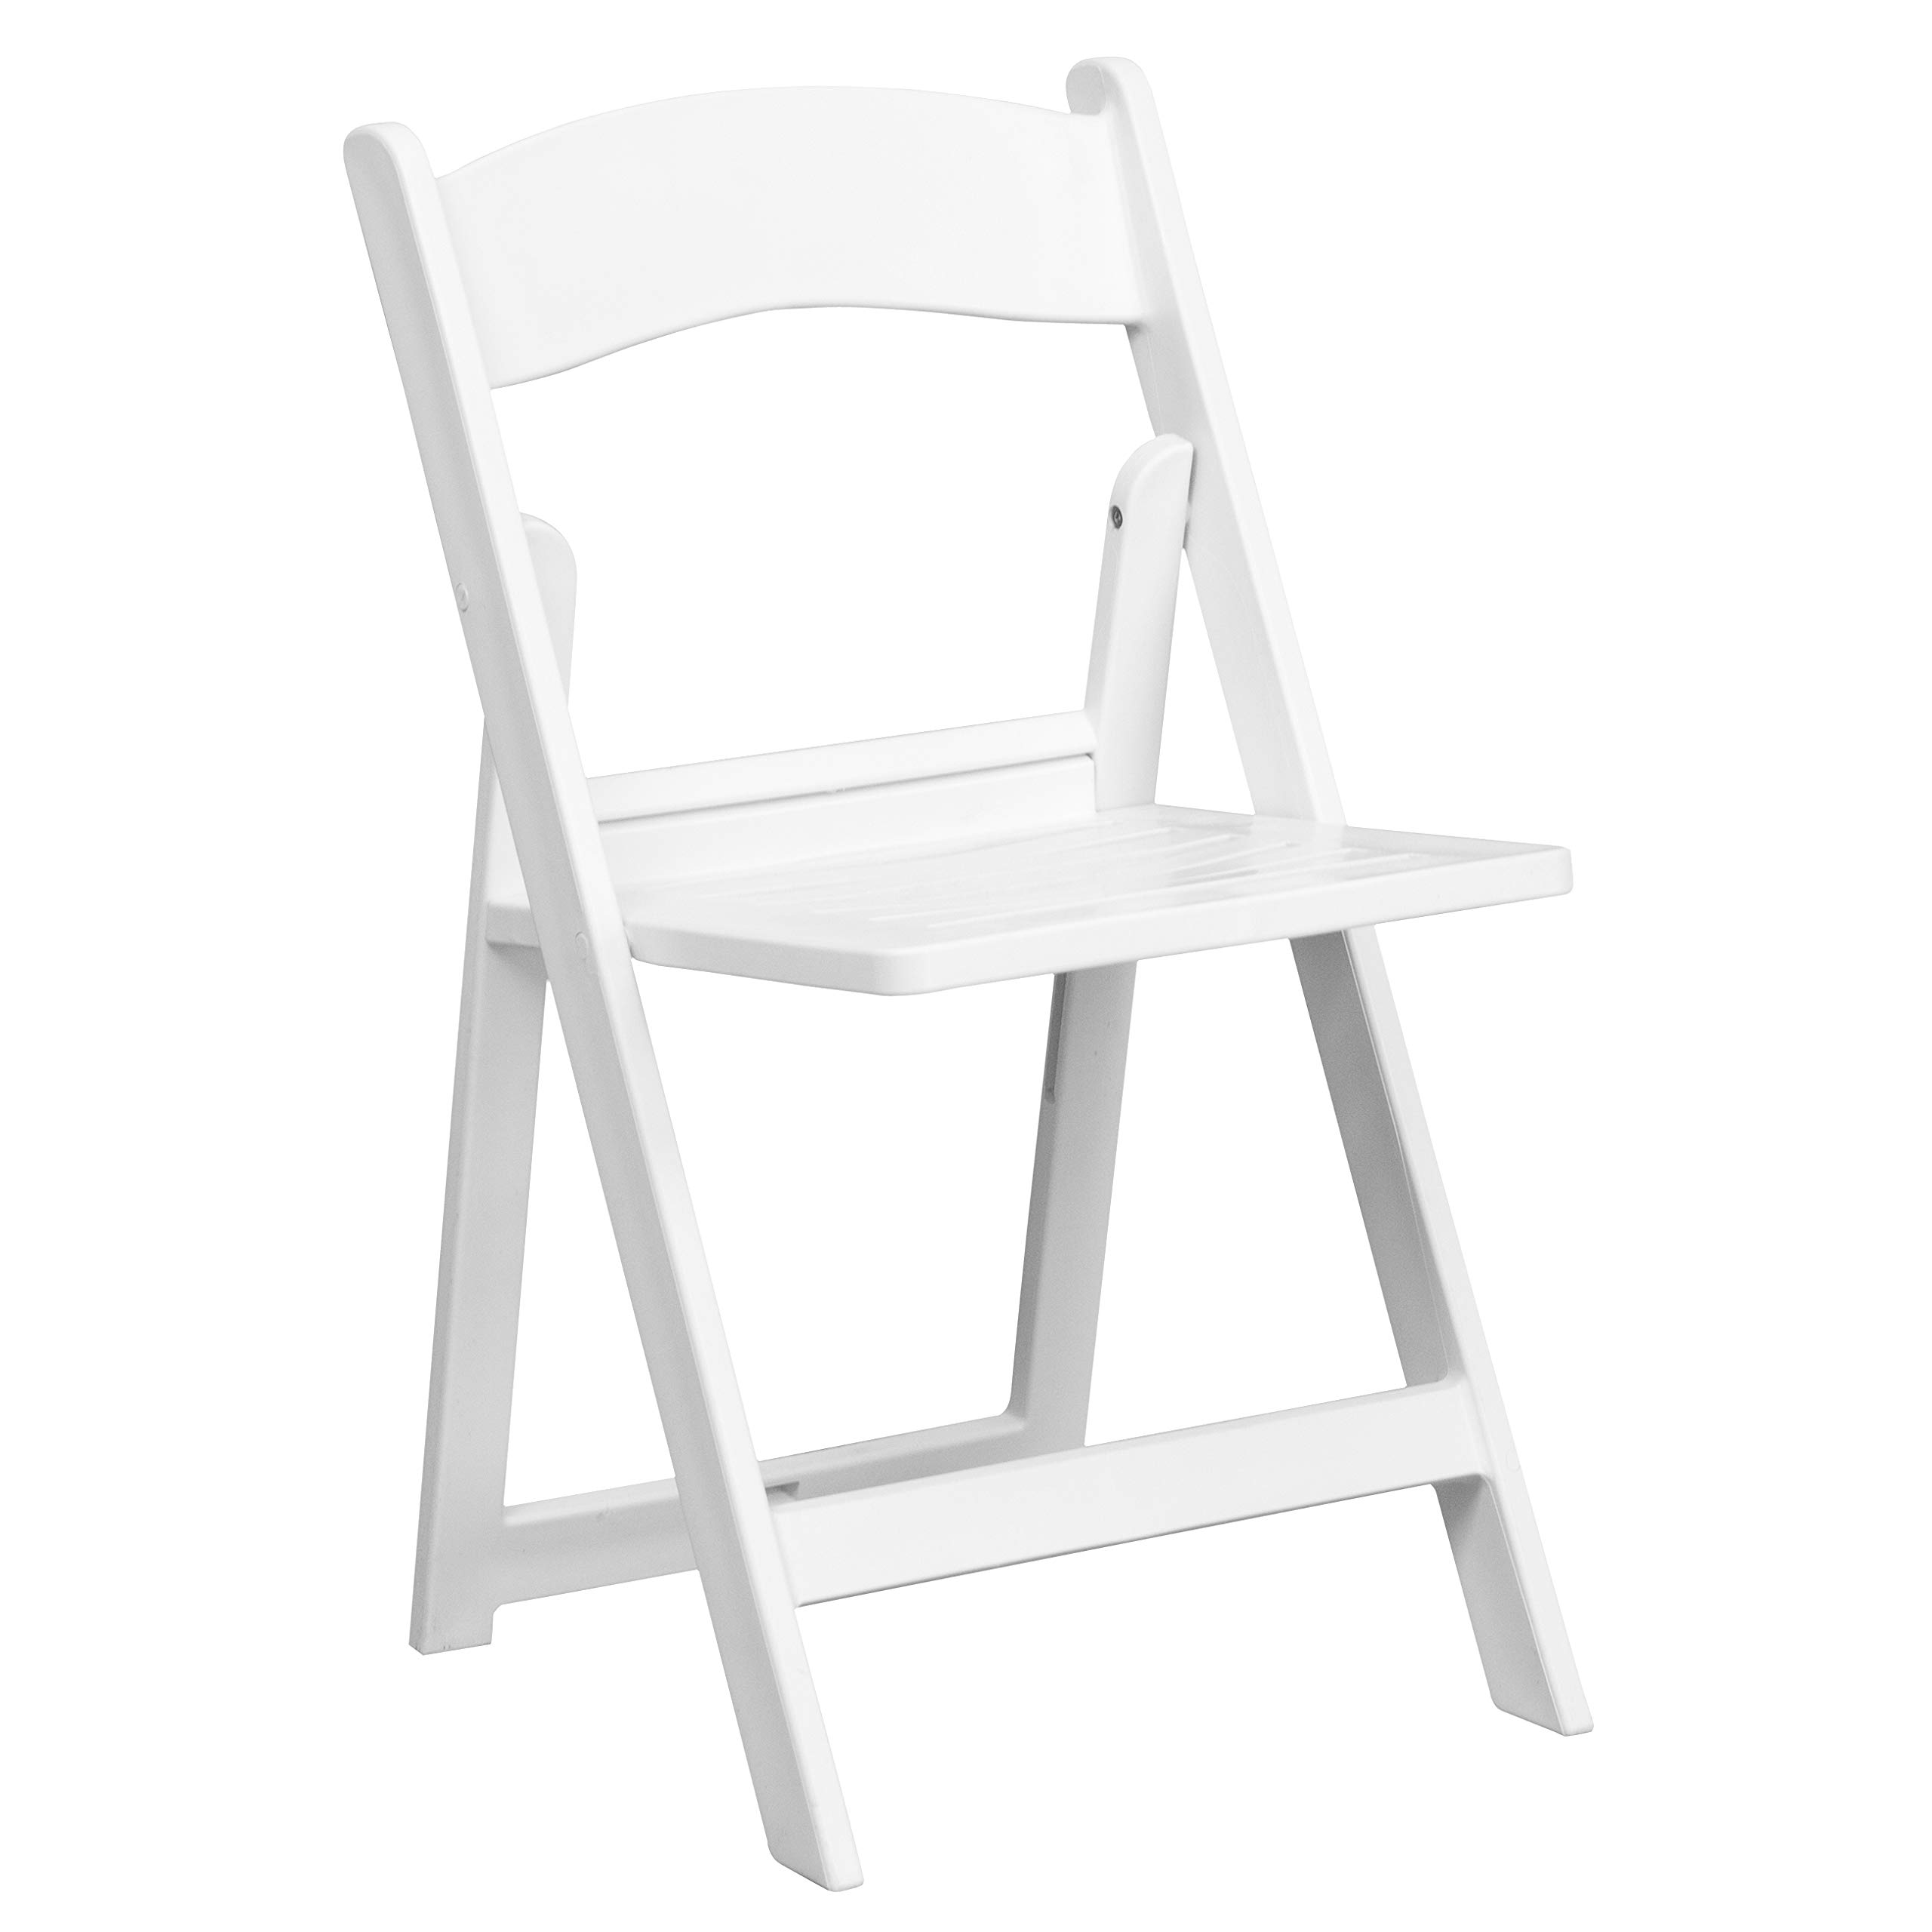 Flash Furniture HERCULES Series 1000 lb. Capacity White Resin Folding Chair with Slatted Seat by Flash Furniture